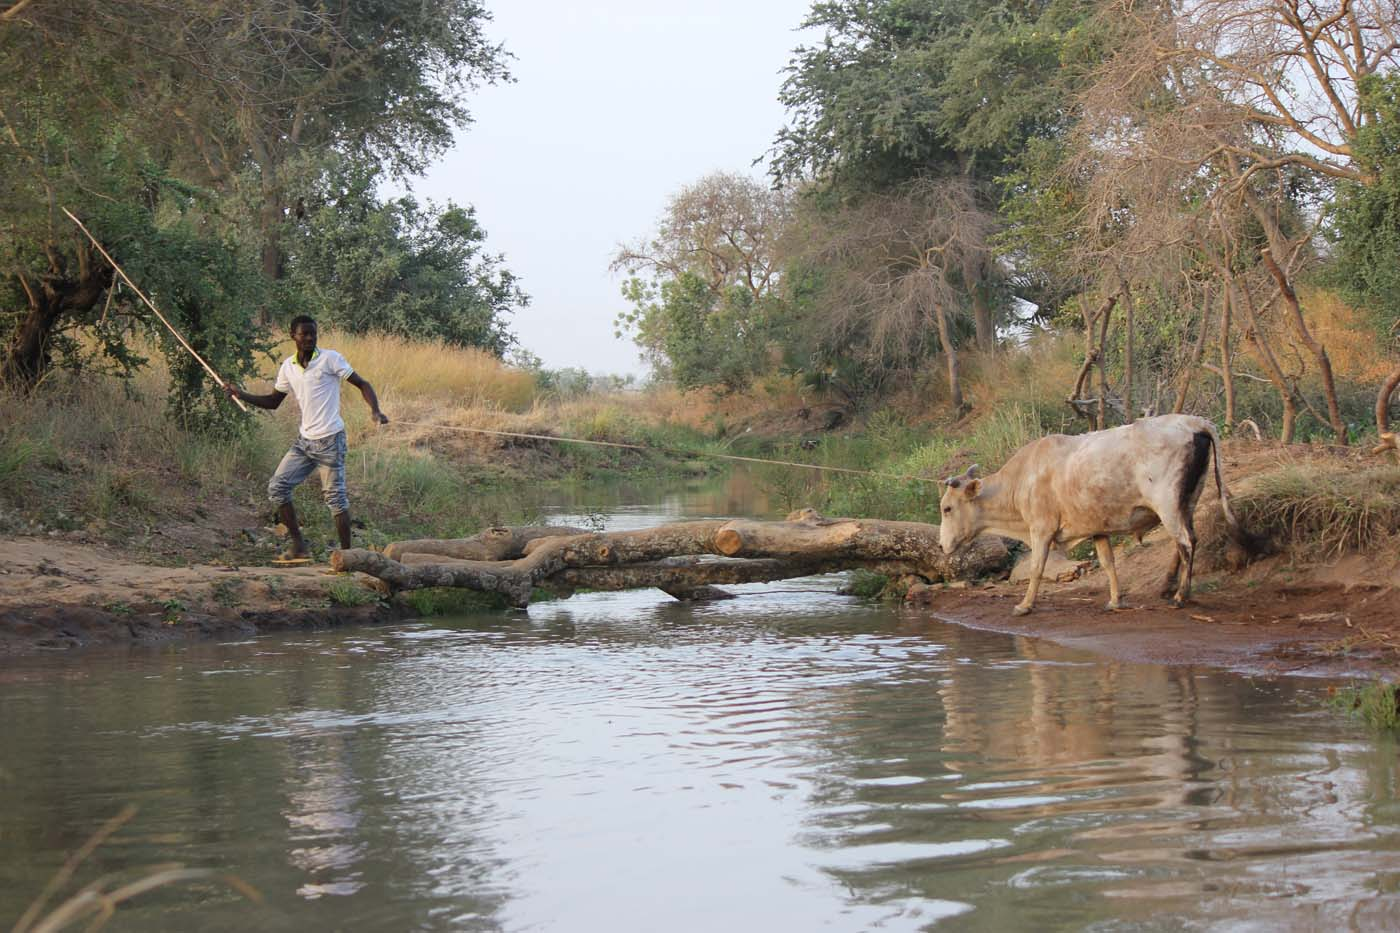 Leading a stubborn cow to cross takes persistence